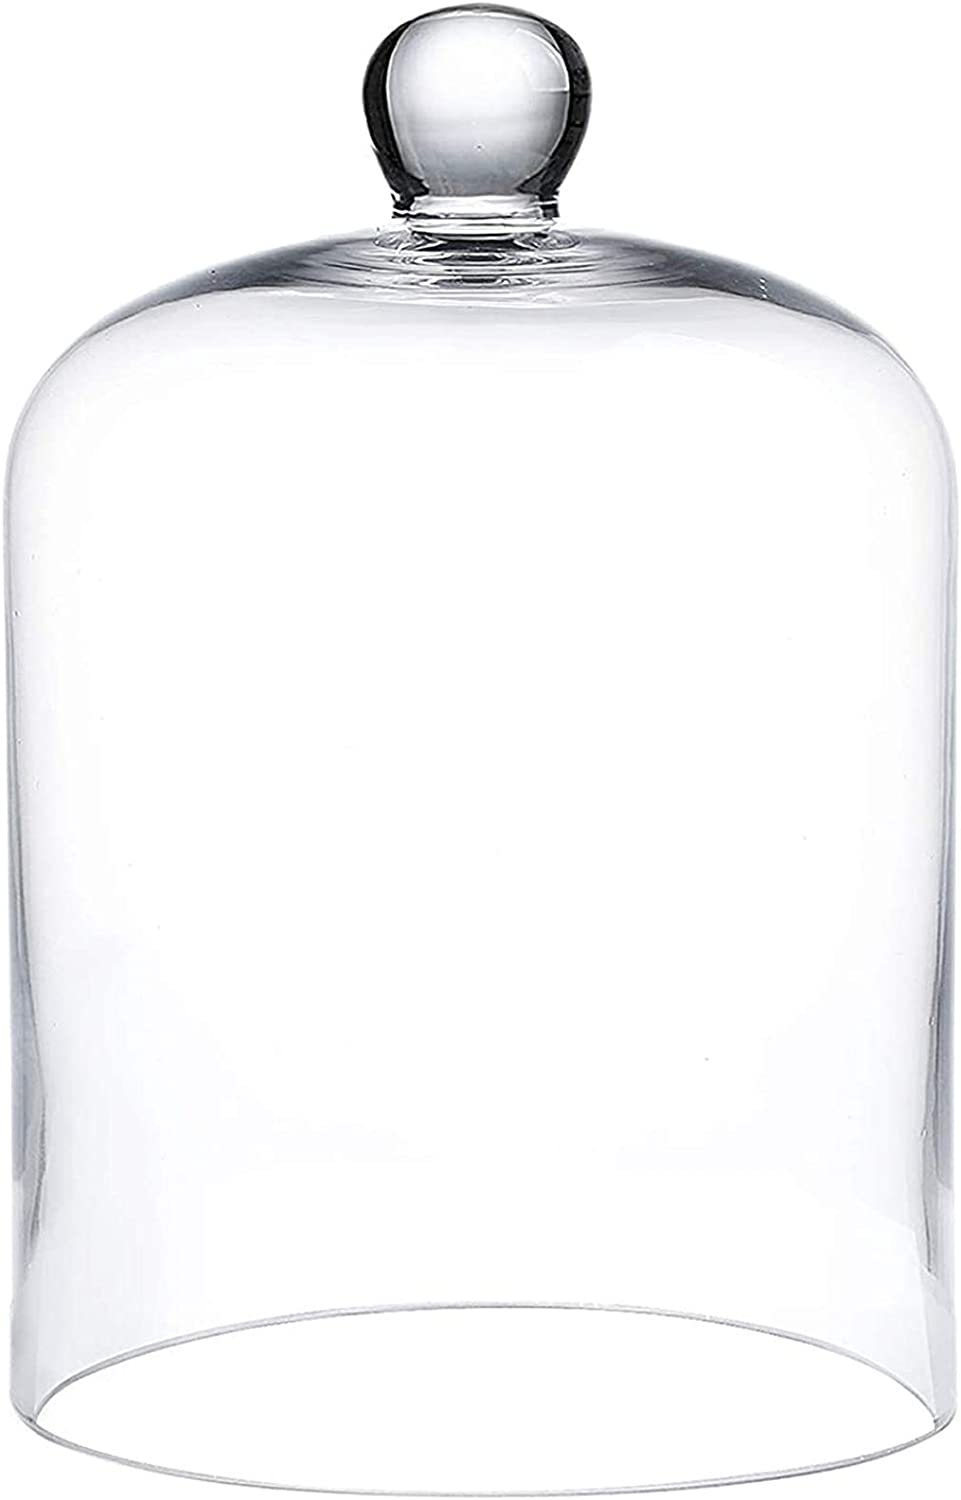 RenRenLe 8.5X4.7 Inches Bell Jar Glass Display Dome Glass Cloche Bell Dome Glass Display Cover for Dessert Foods (Interior Size 6.3 x 4.7 Inches)